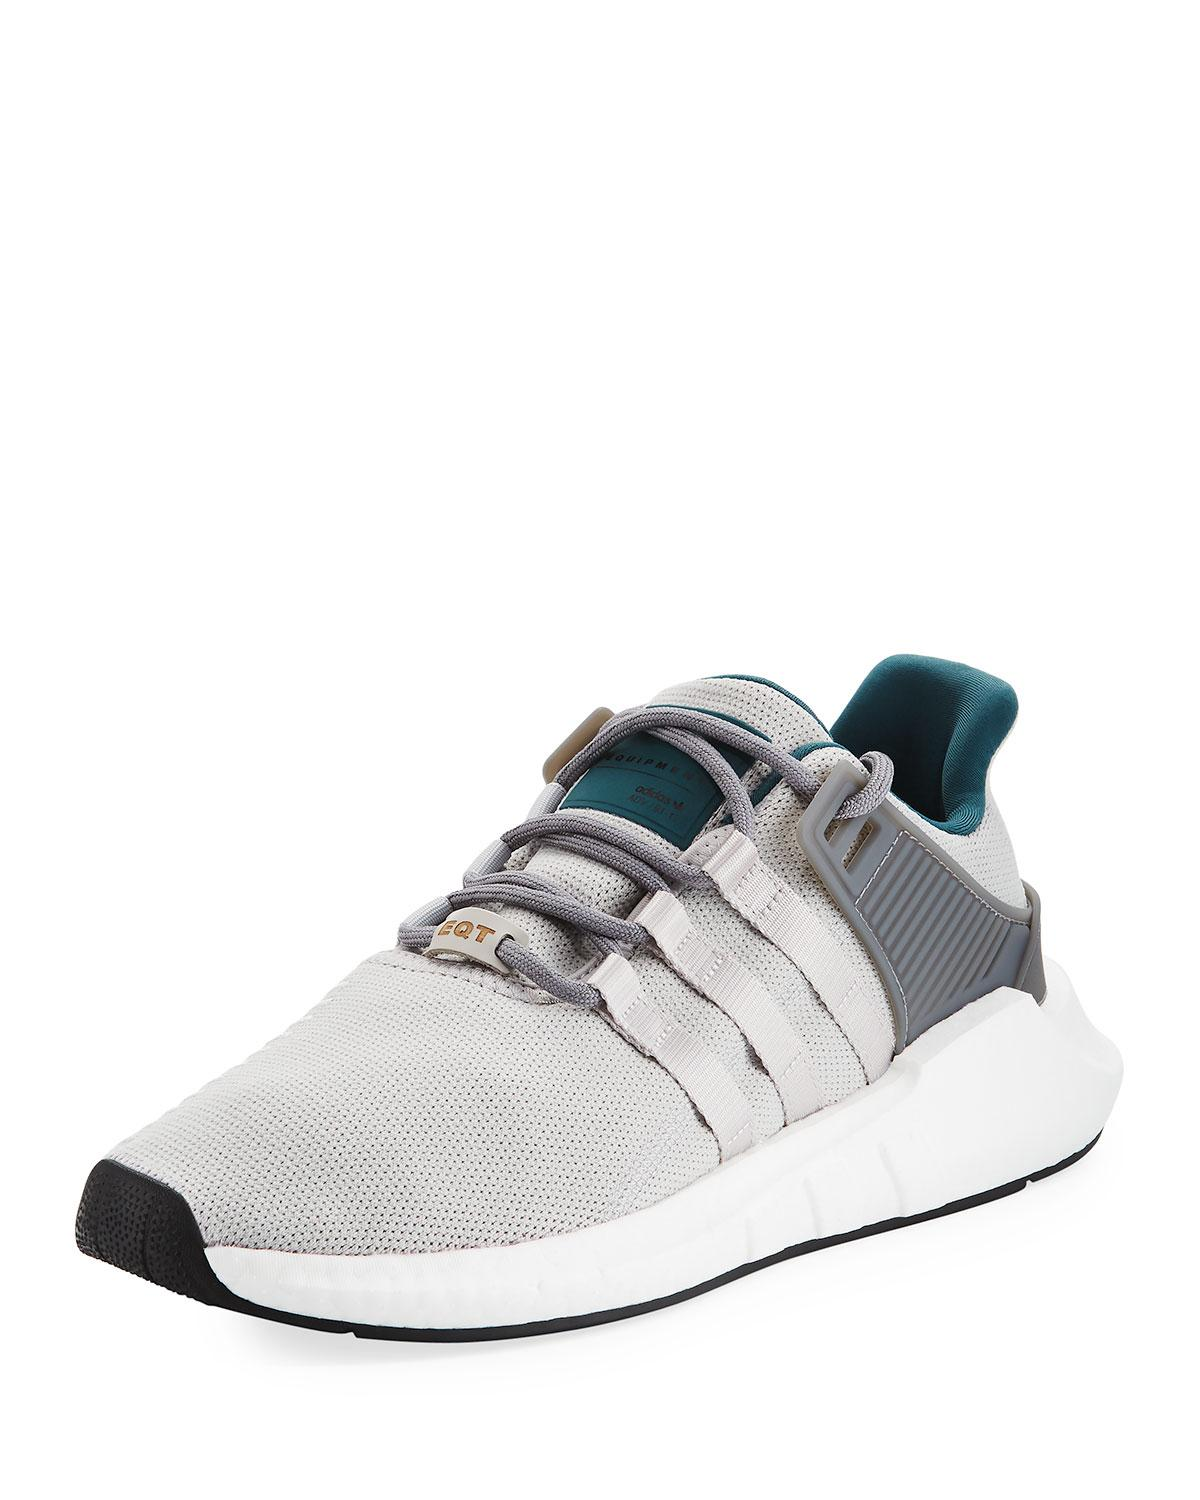 wholesale dealer 64593 7b7cf Adidas - Mens Eqt Support Adv 93-17 Sneakers Gray for Men - Lyst. View  fullscreen